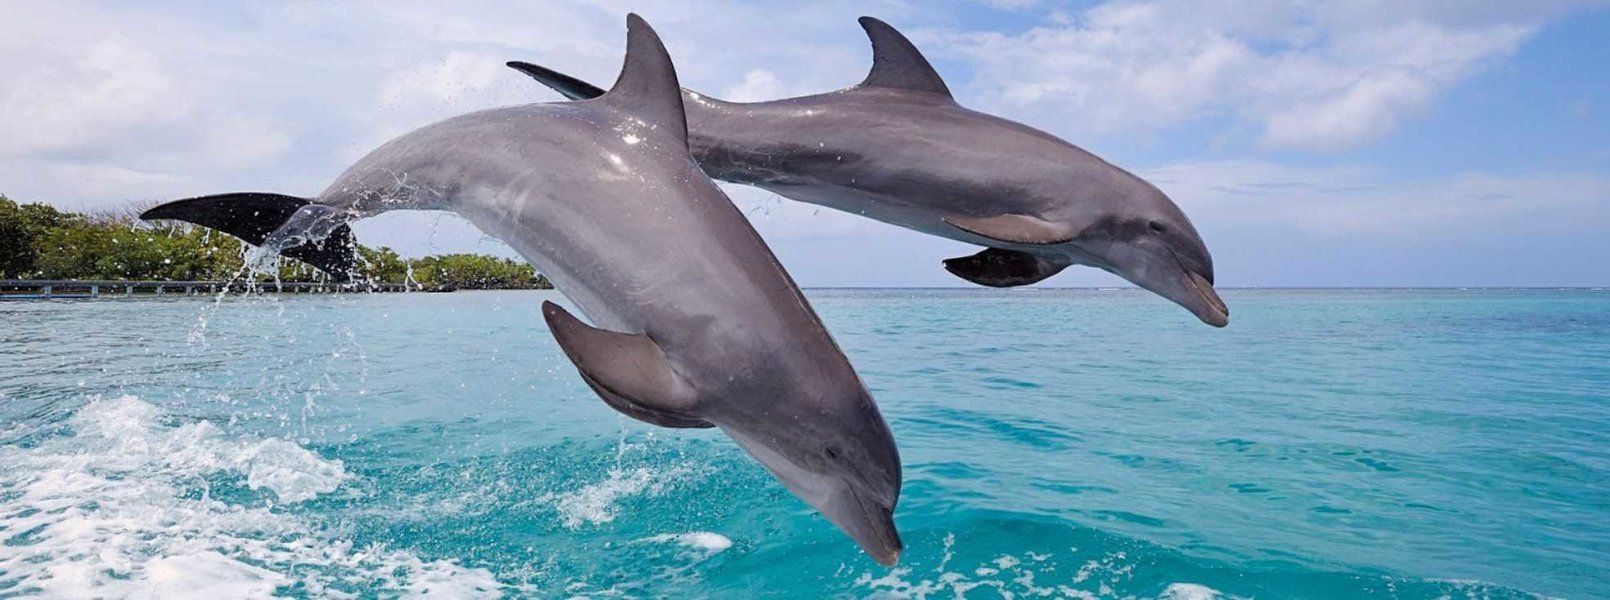 Dolphin Spoting in Goa and snorkeling trip - Tour